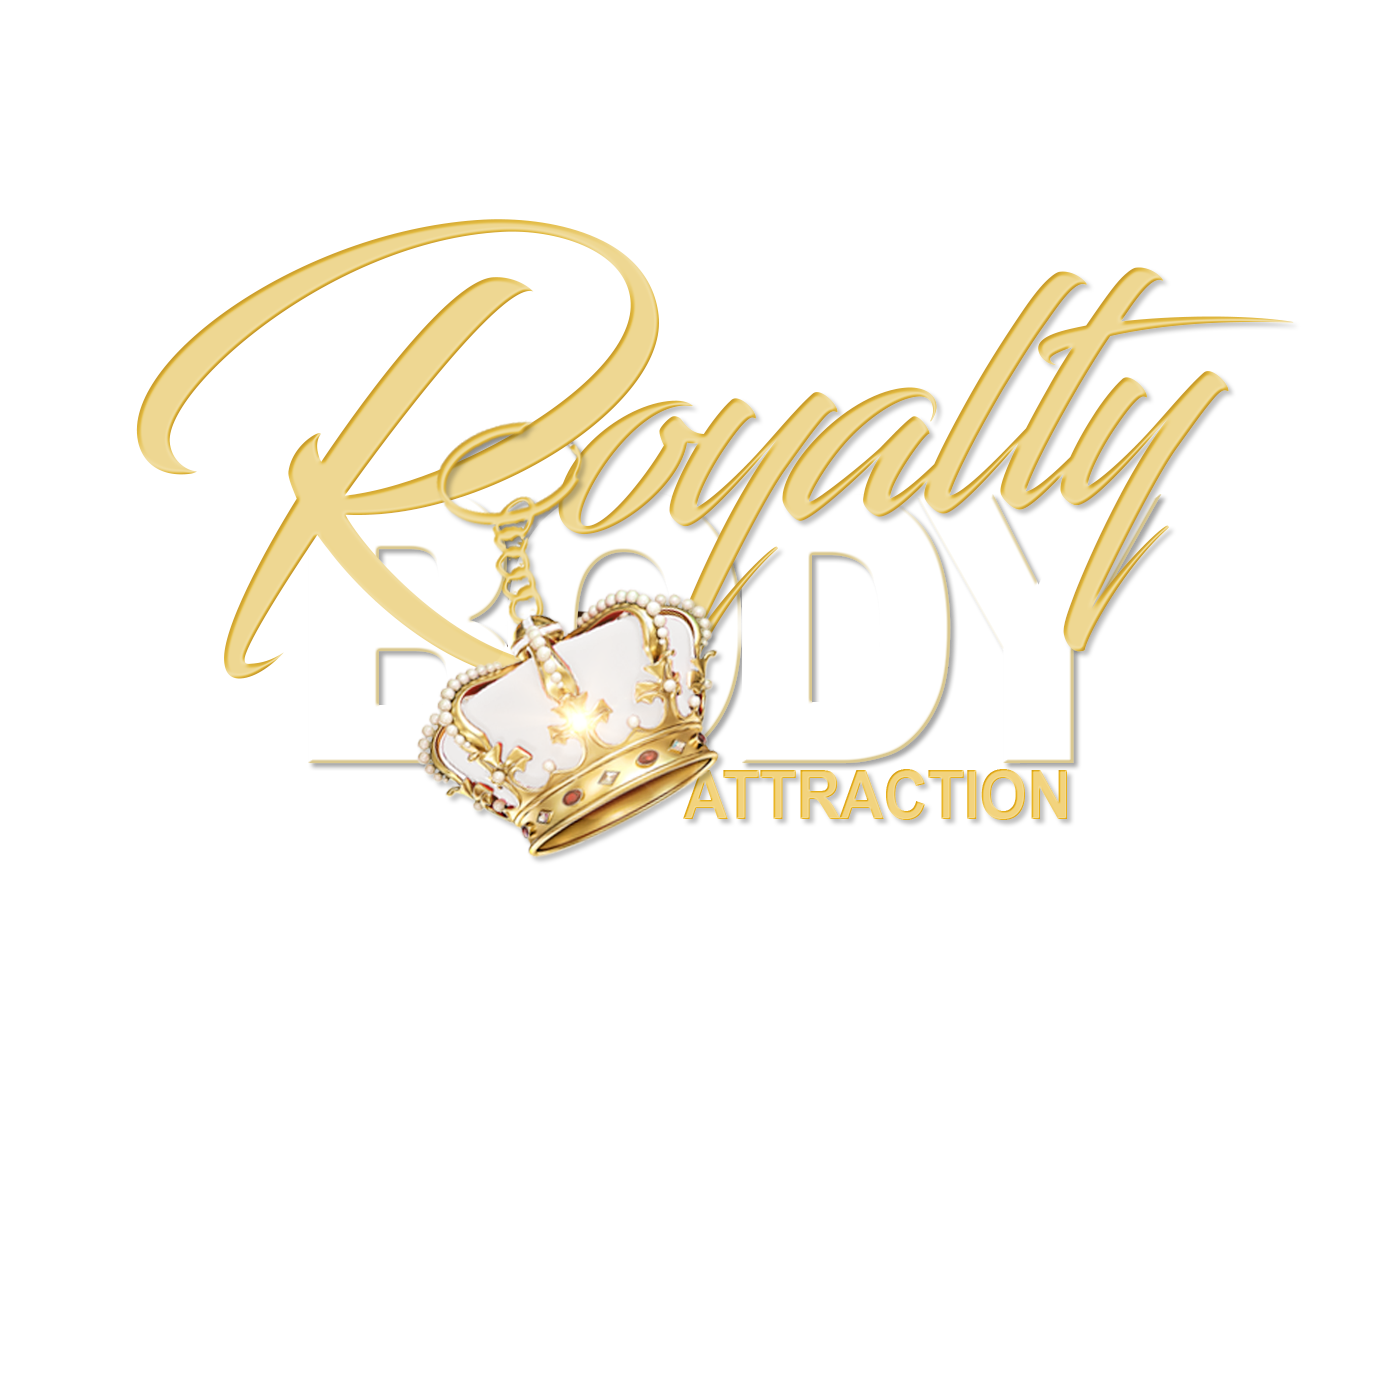 Royalty Body Attraction Logo